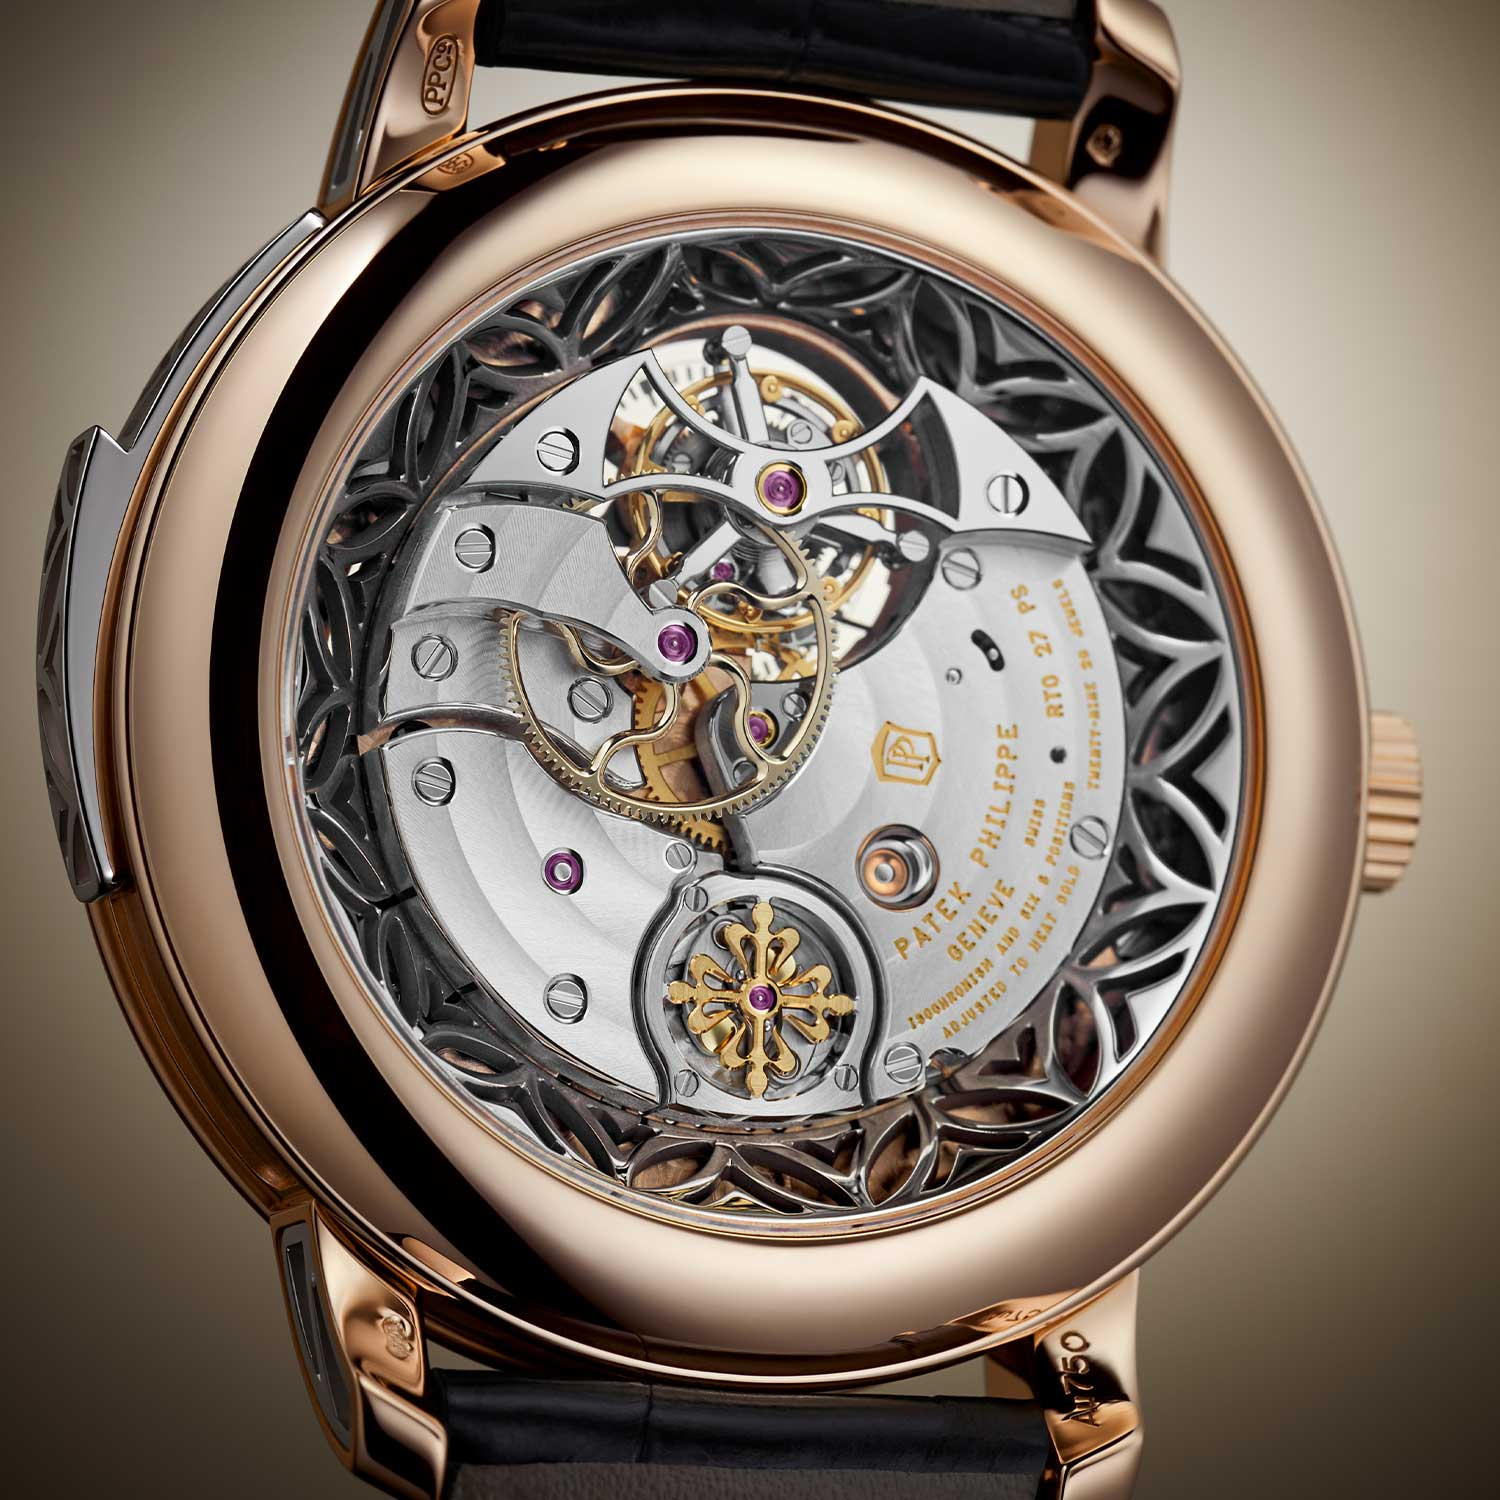 The Caliber R TO 27 PS of the 5303 showing the right side up of the tourbillon cage